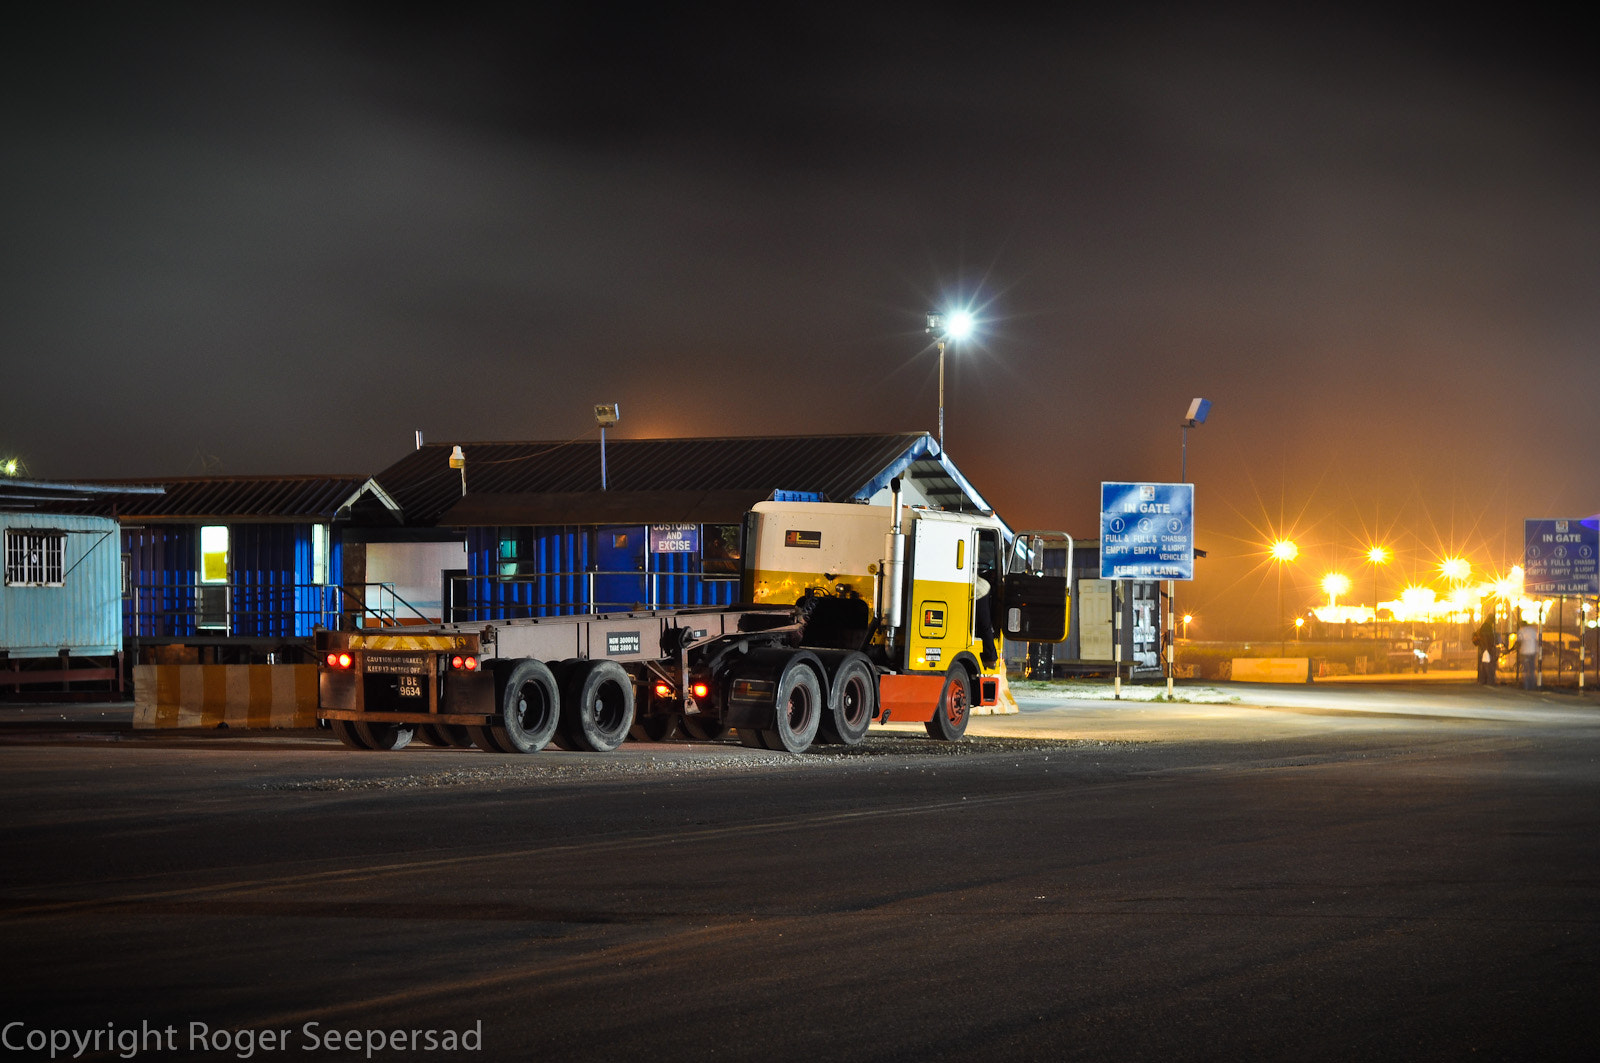 Photograph Trucks by Roger Seepersad on 500px